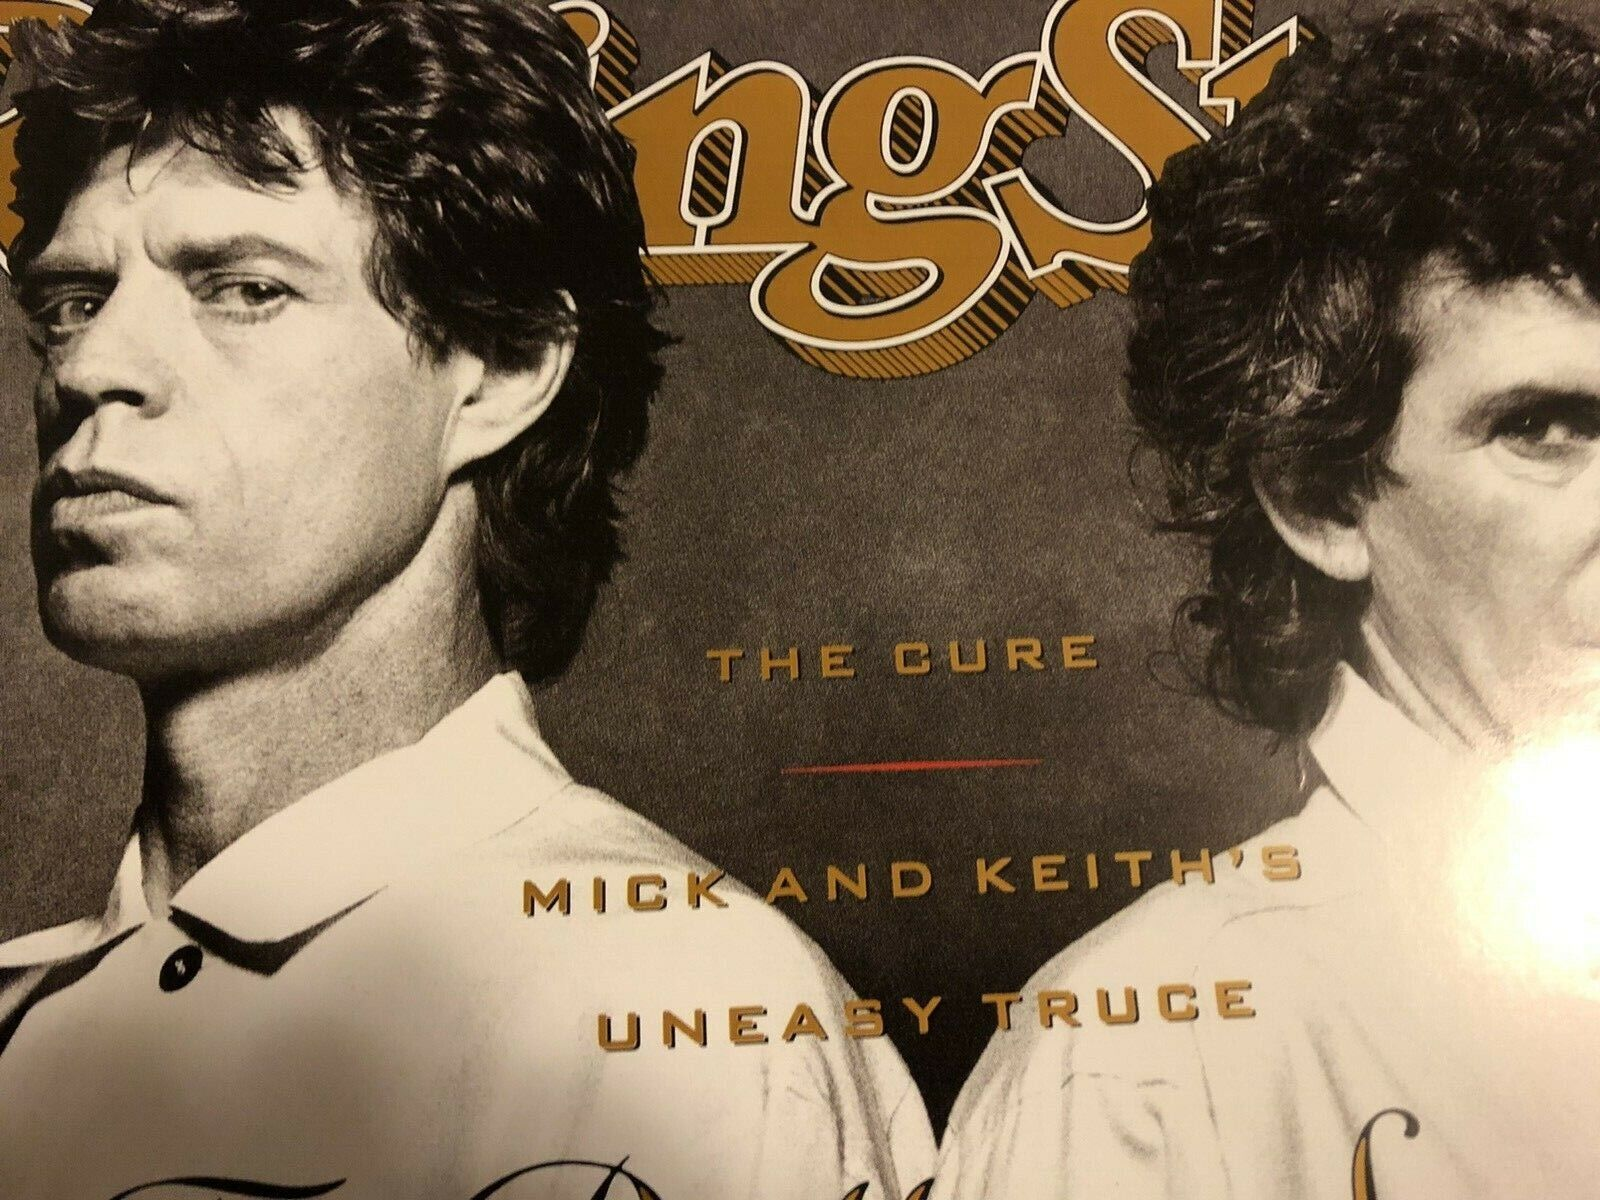 ROLLING STONES Jagger Richards Rolling Stone Mag. 1989 Cover Poster FREE SHIP  - $39.99